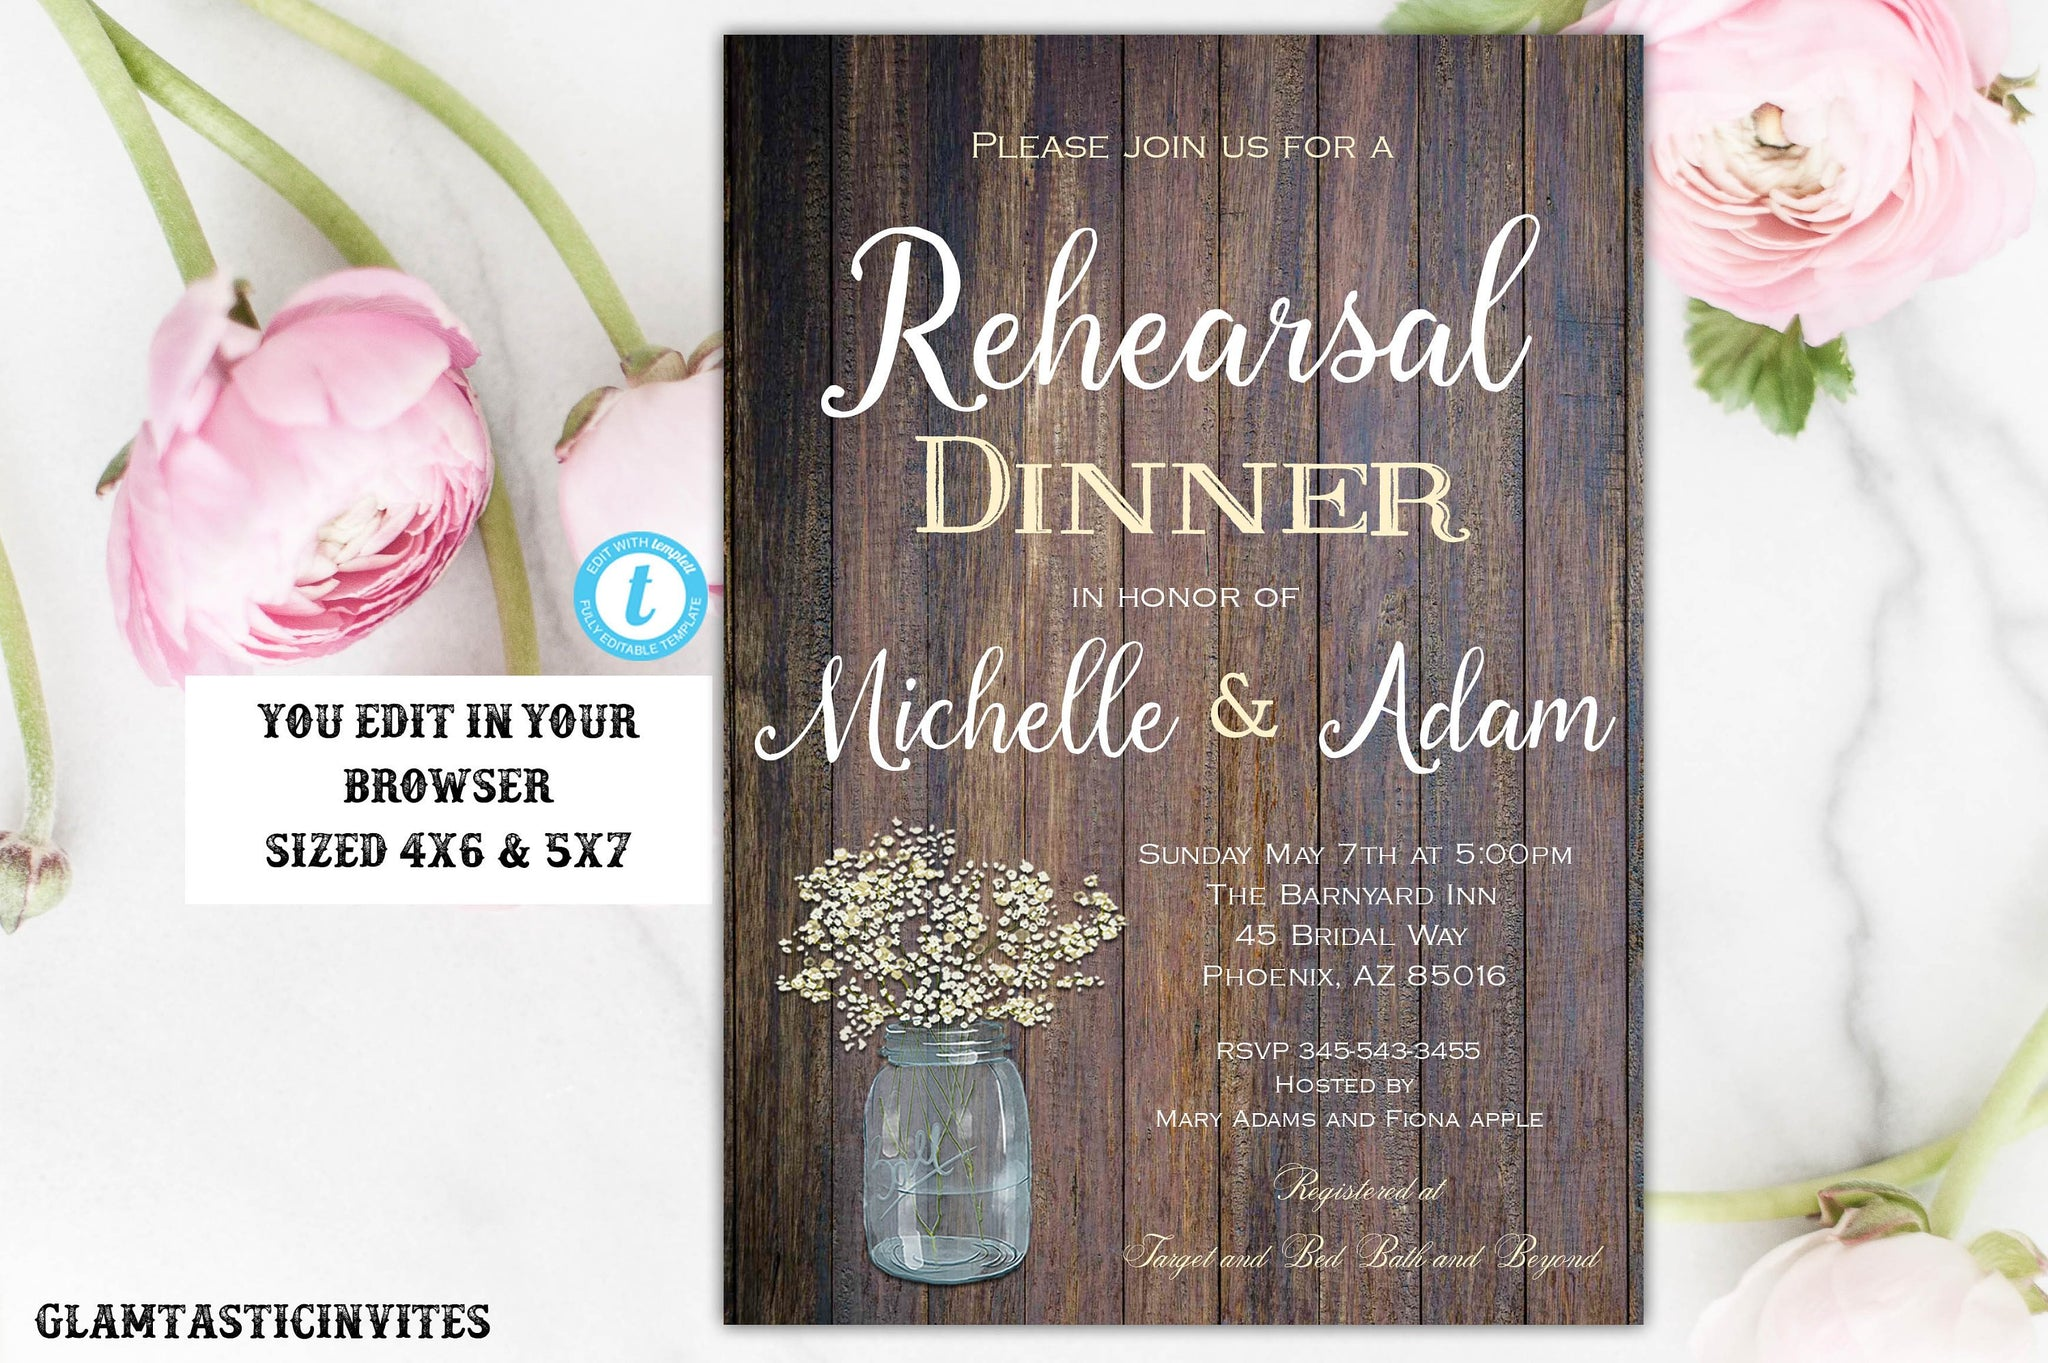 Rustic Country Vintage Rehearsal Dinner Invitation Template Instant Download Editable Printable Floral Flower, Rustic, Rehearsal Dinner, DIY